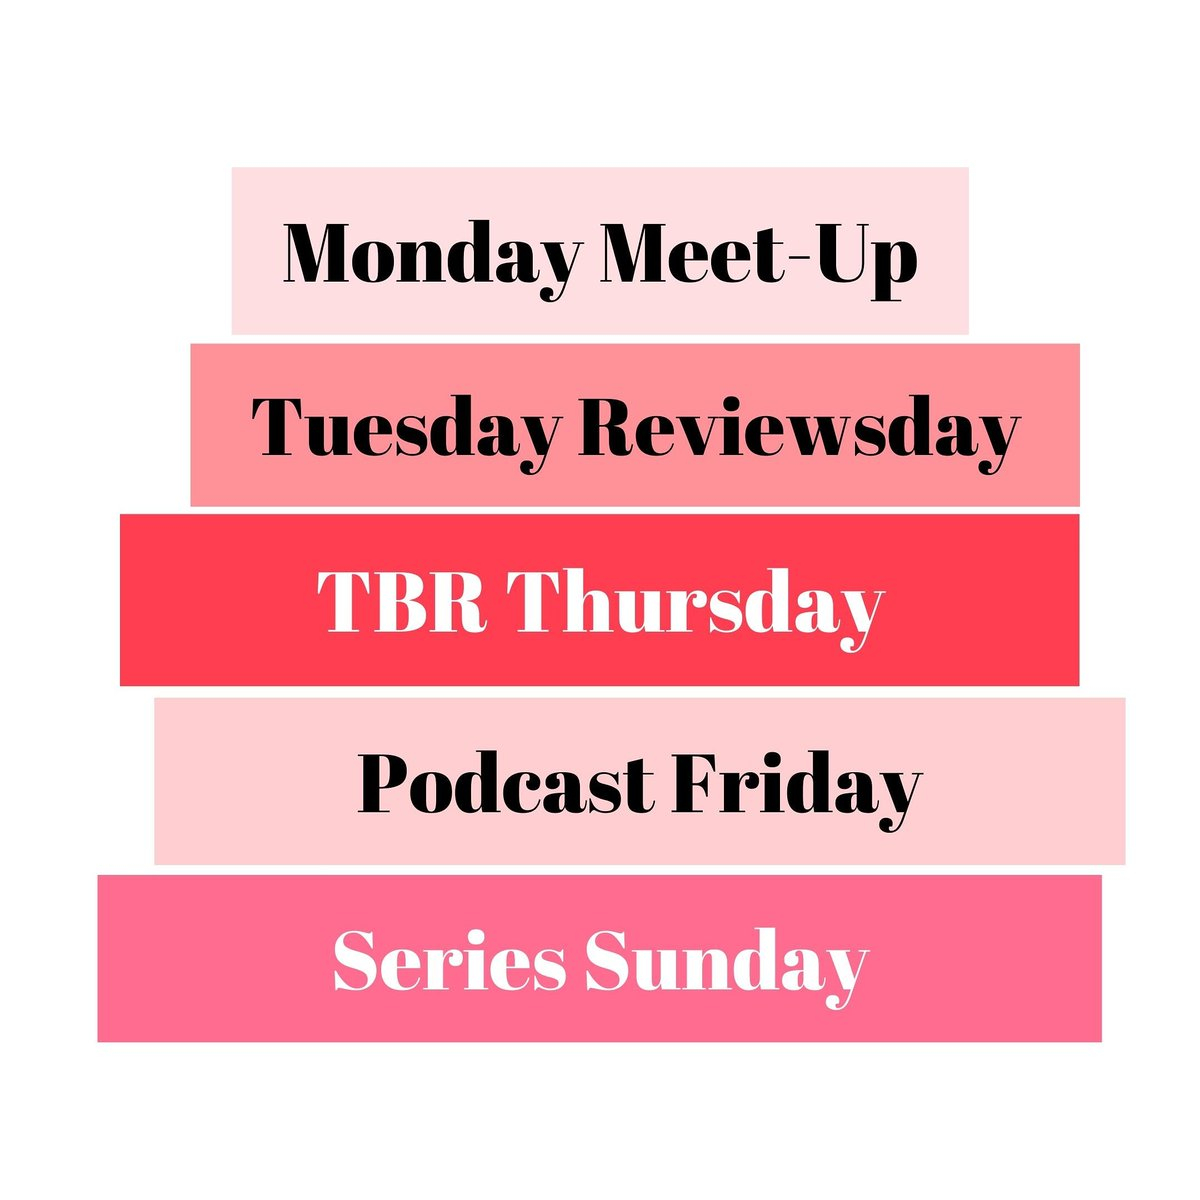 Hello Friends! Now that Im all moved into my new place in #StPaulMN, its time to get back to some sort of consistency. ❤🎧 Beginning next week Ill be utilizing the Boobies & Noobies Blog a lot more! Heres what you can expect every week on the boobiesandnoobies.com/blog